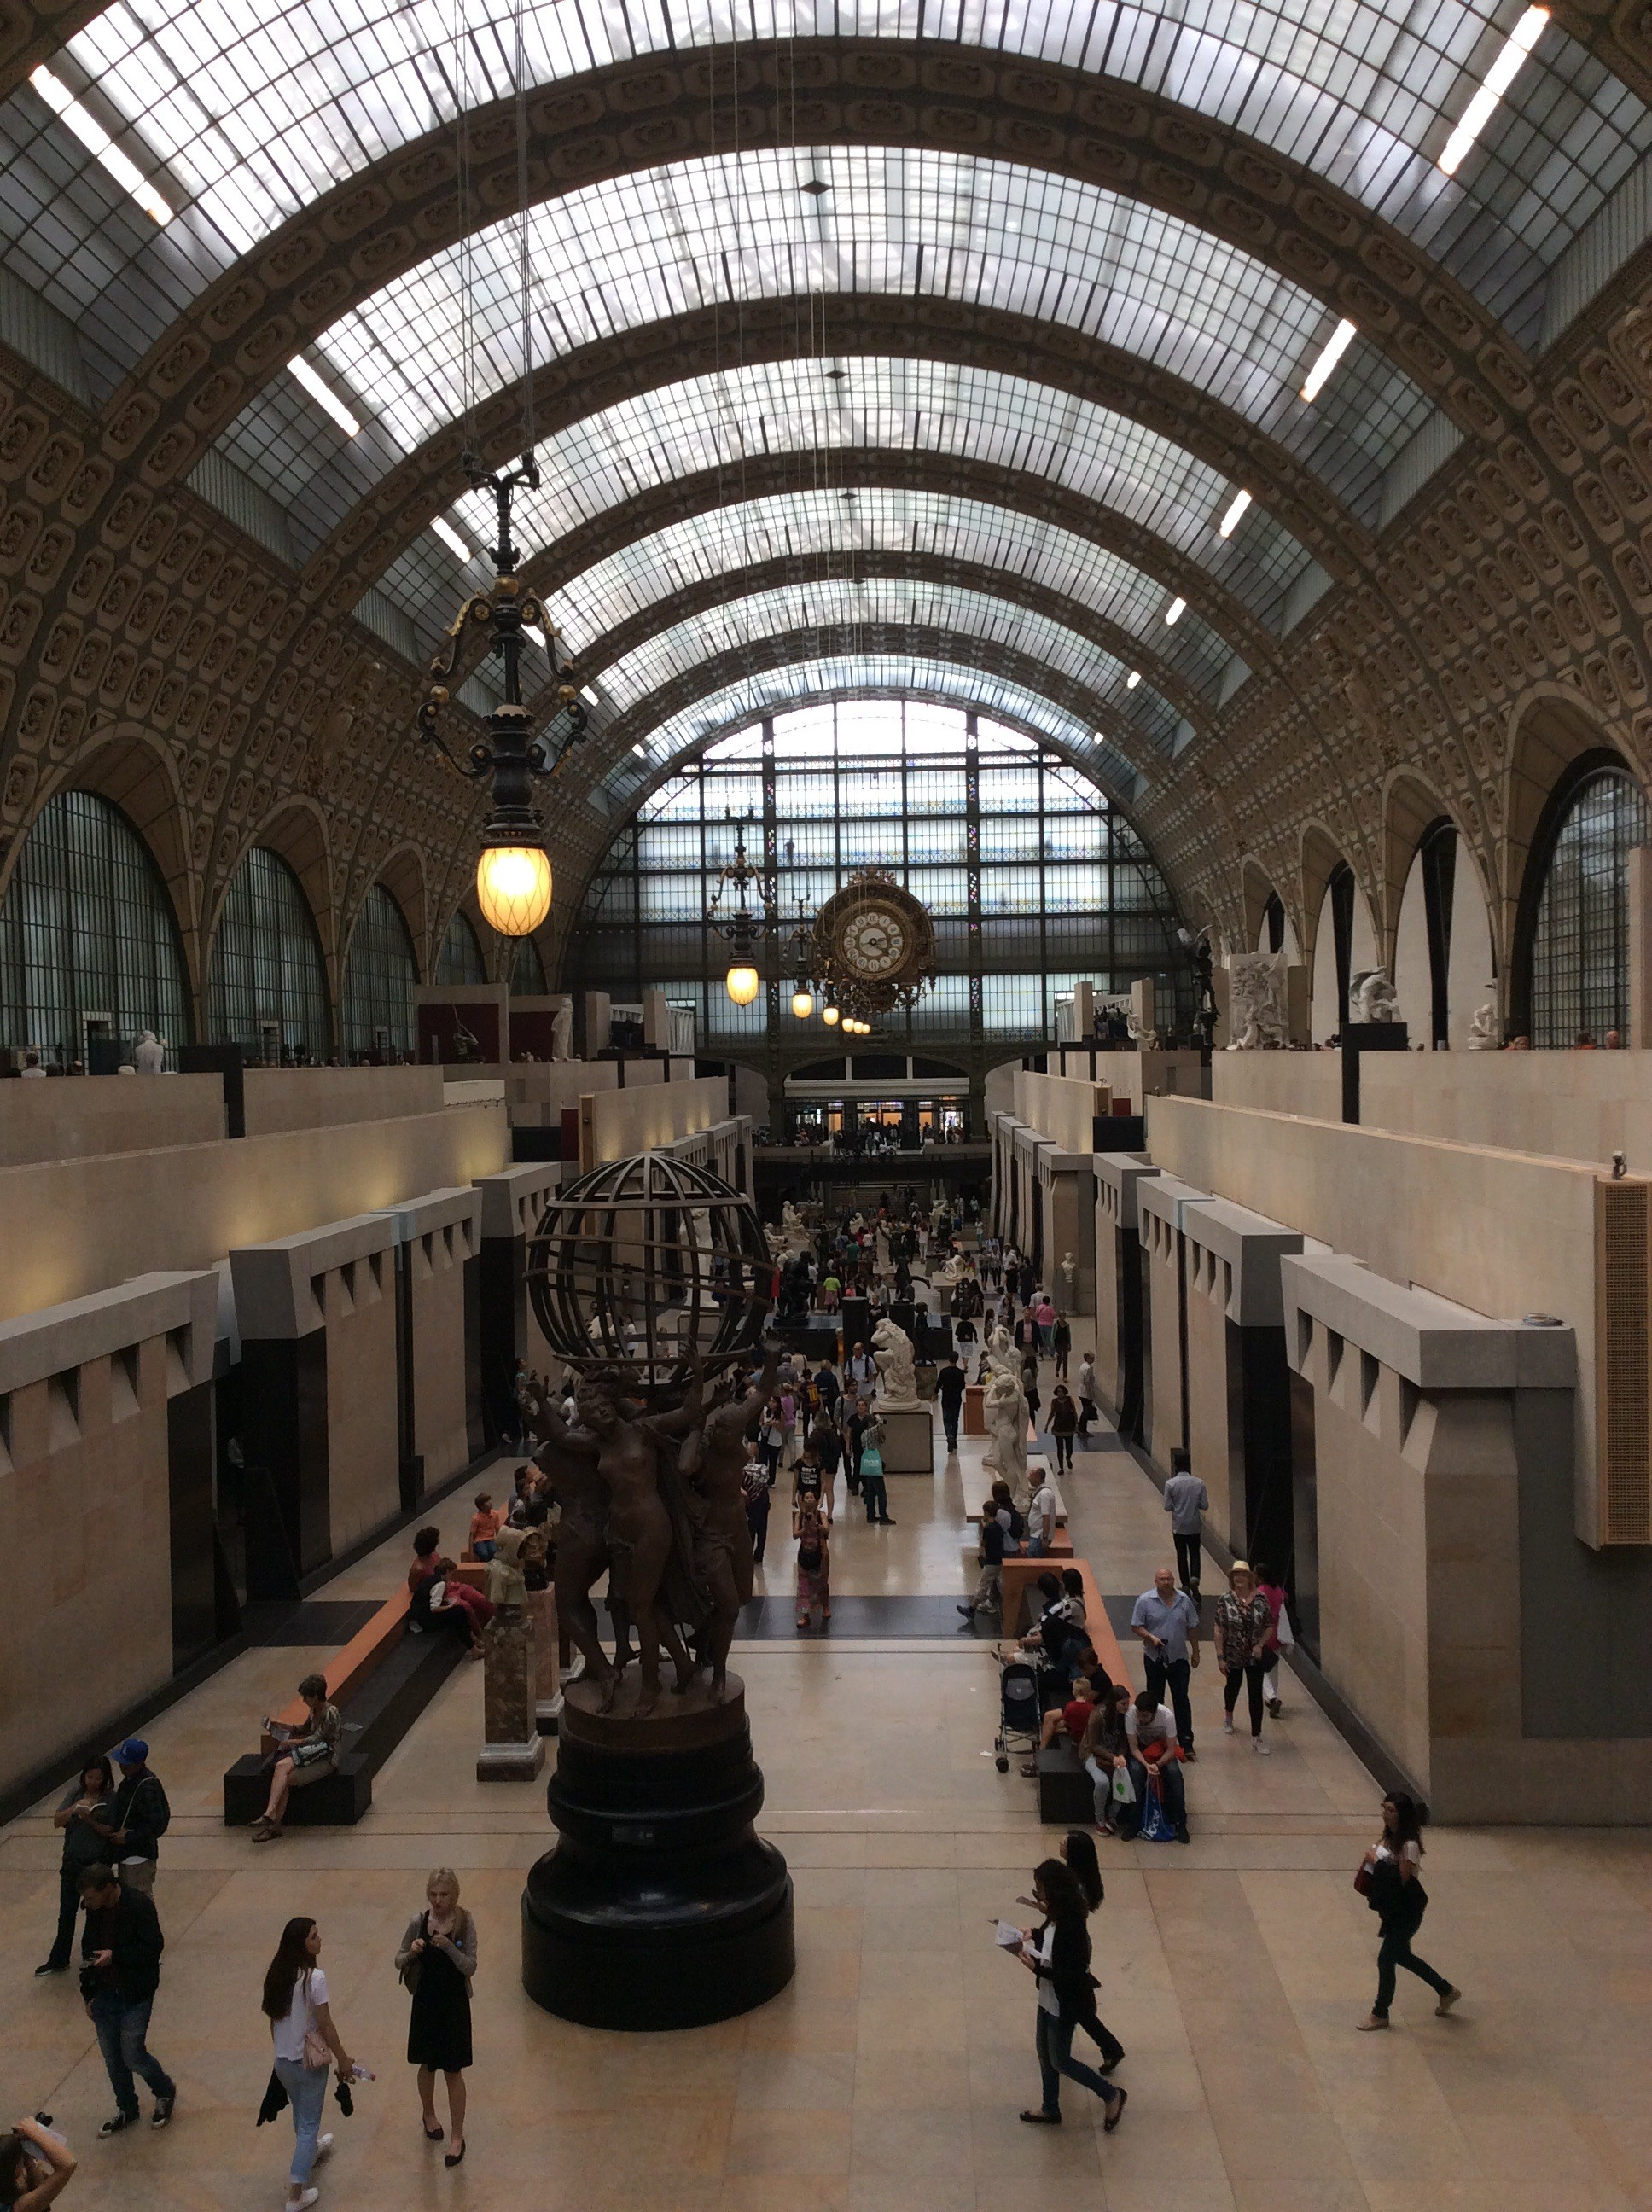 The spectacular Musee d'Orsay.